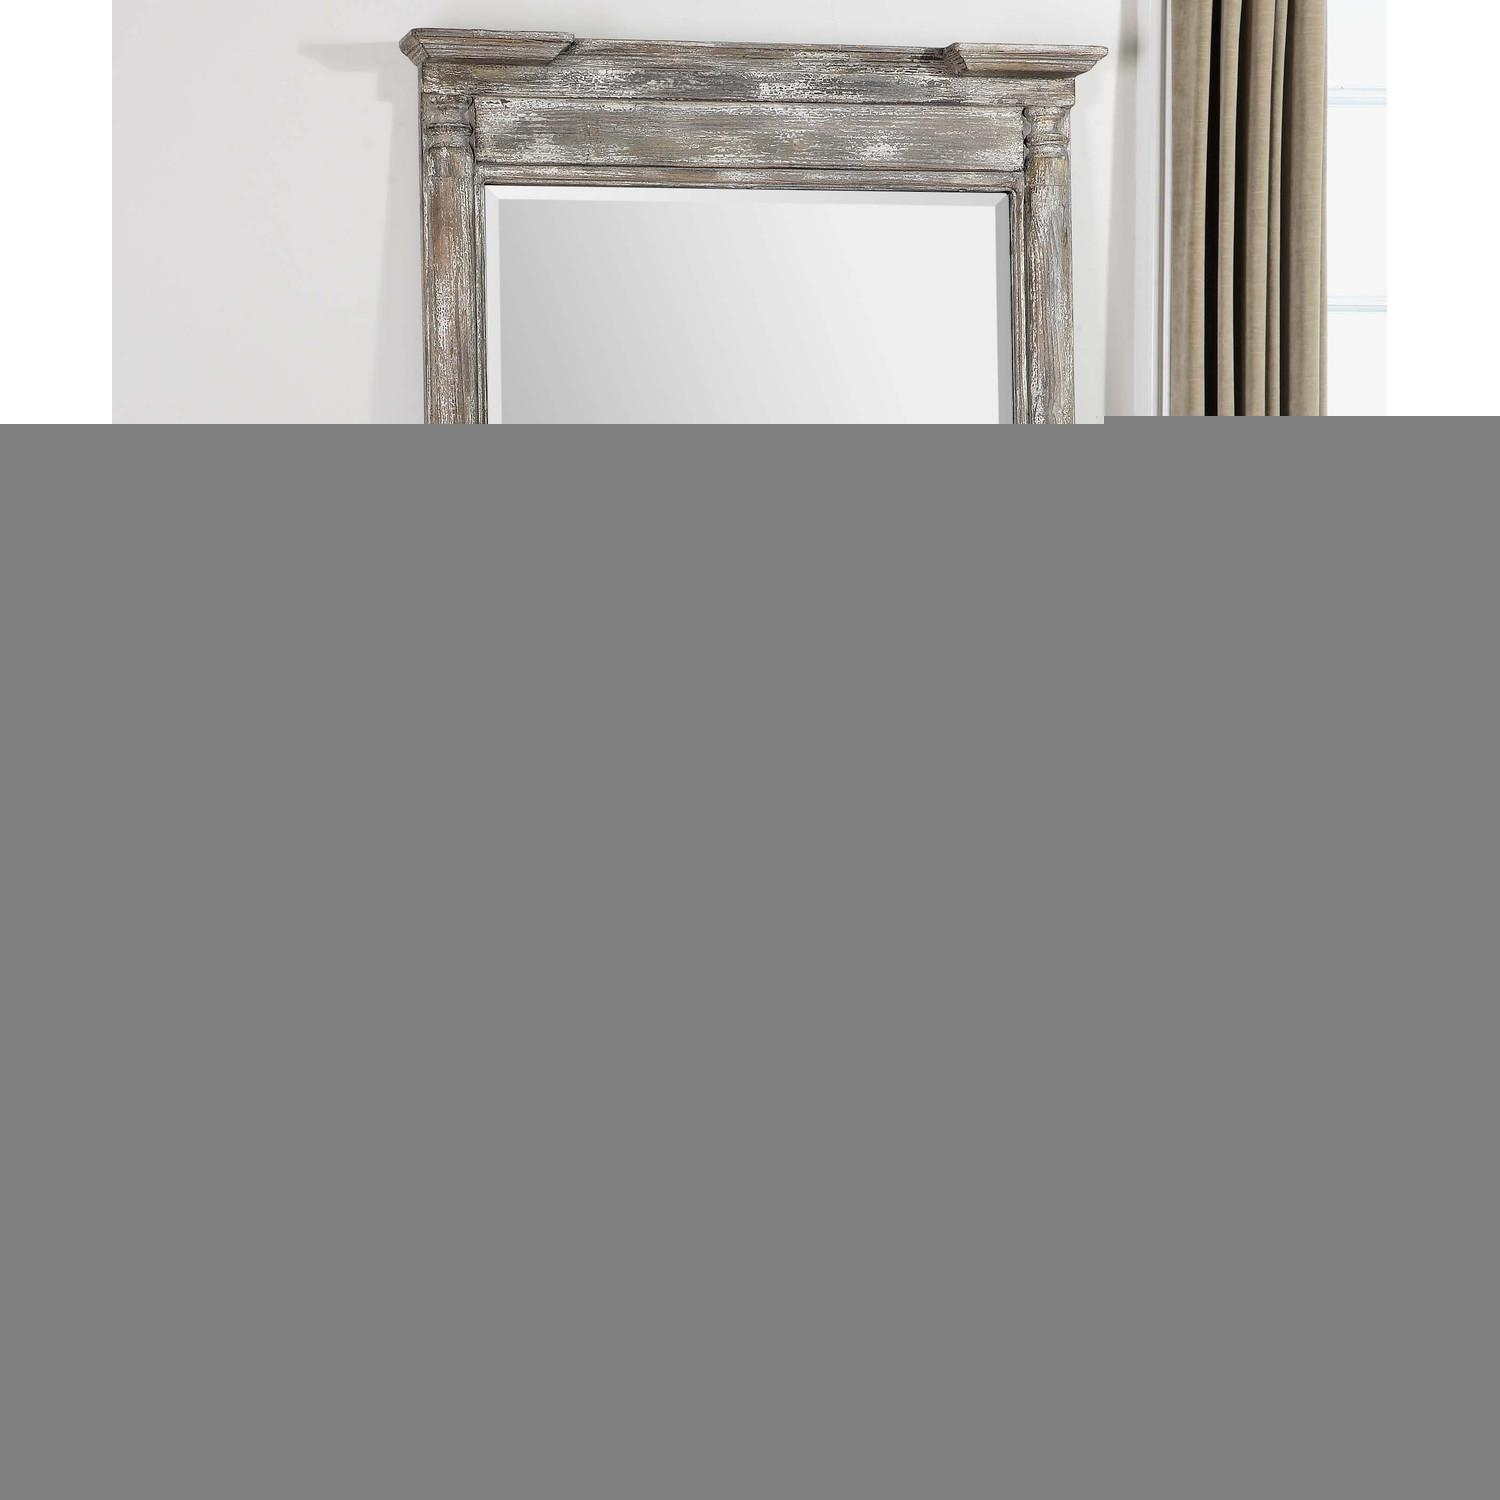 Distressed Cheval Floor Mirror | Floor Decoration In Shabby Chic Long Mirror (Image 10 of 20)